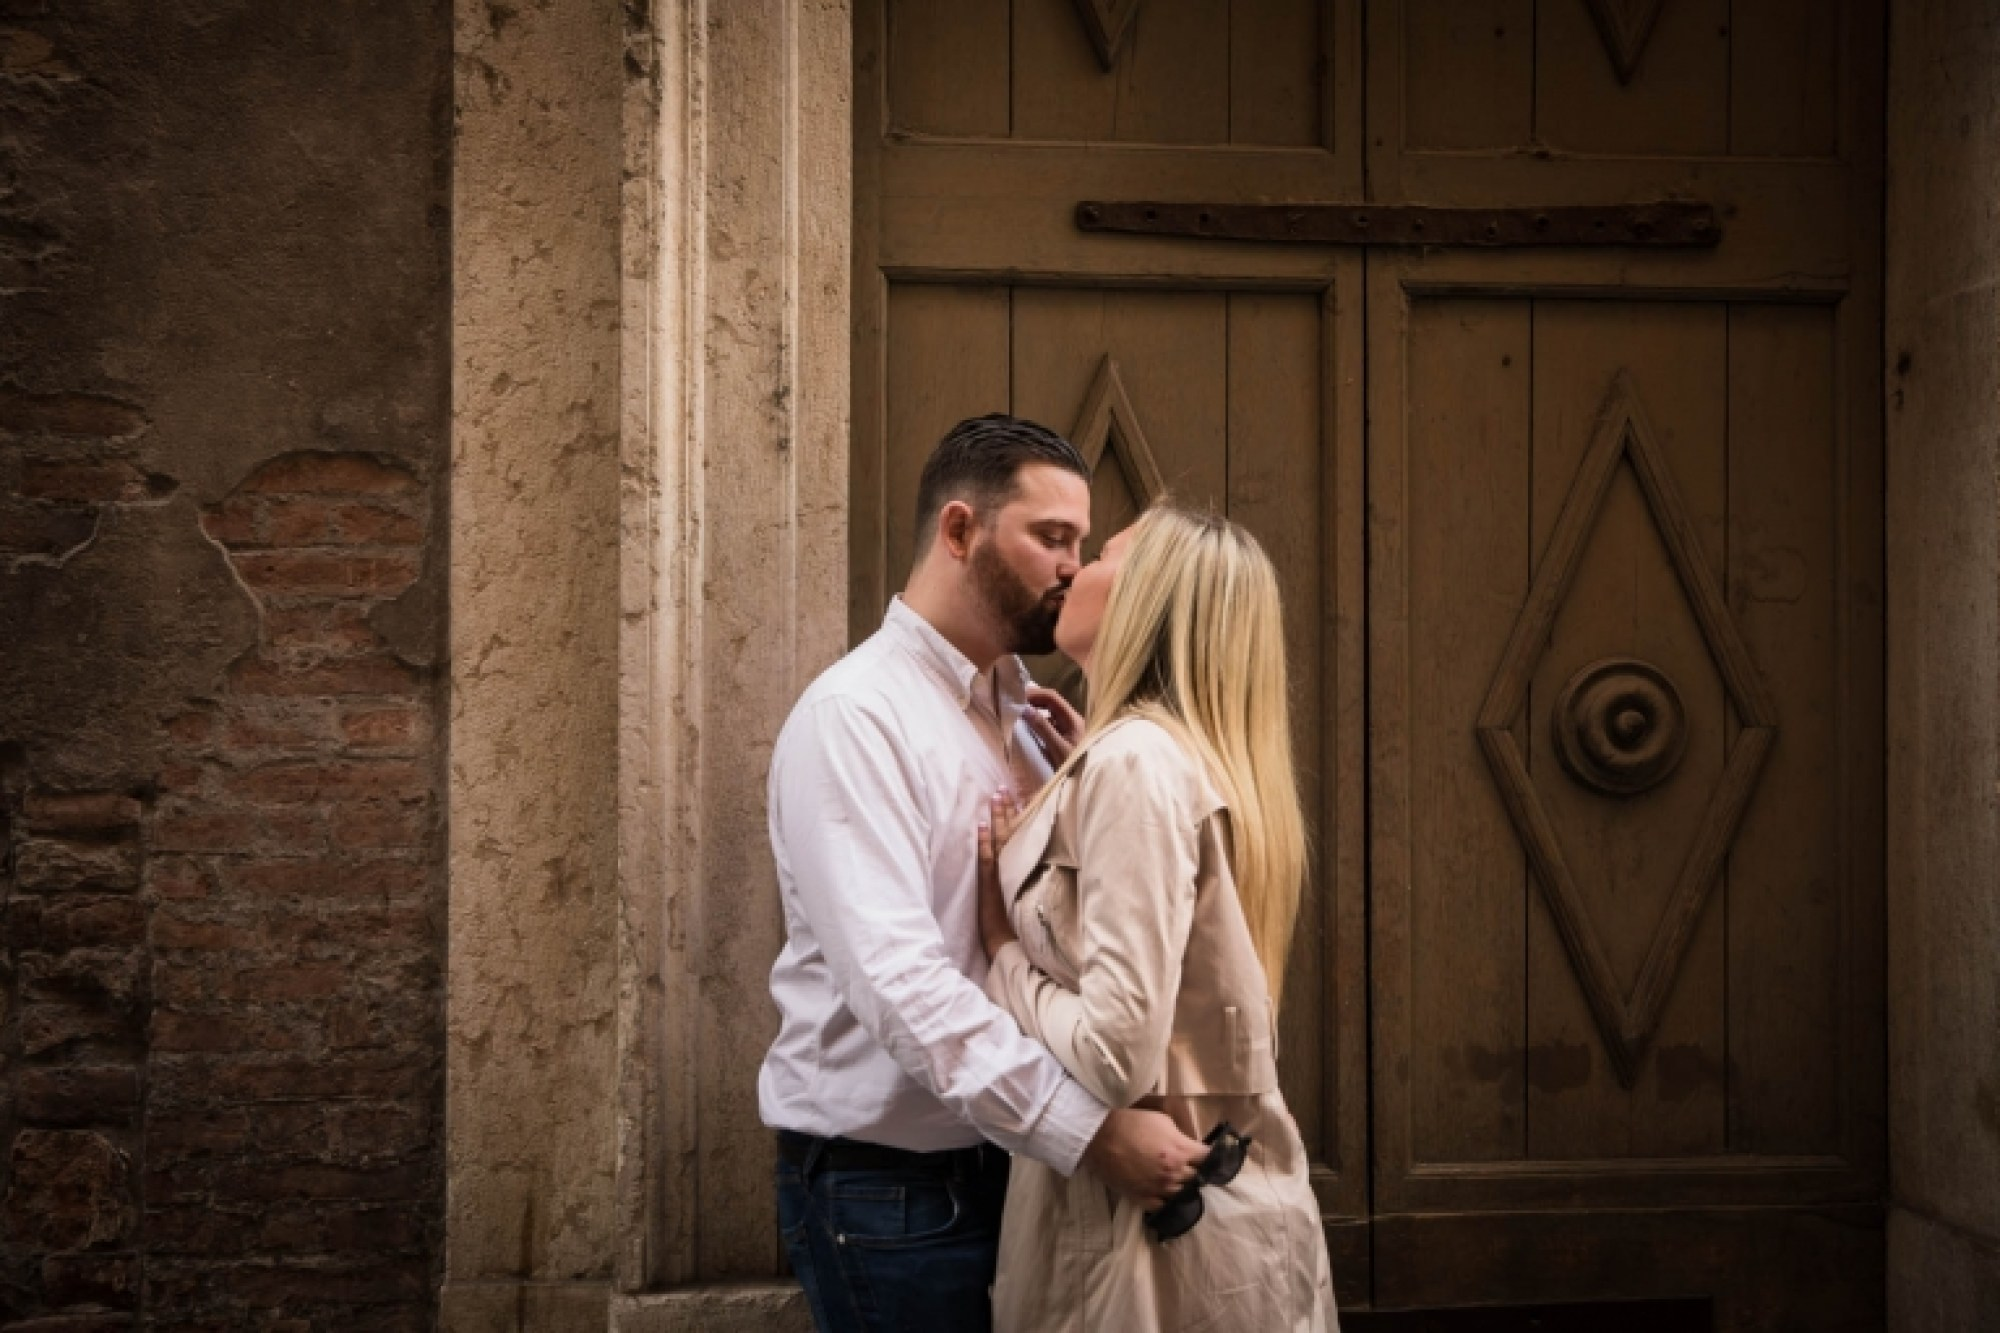 A couple in love kiss soon after arriving in Verona, Italy